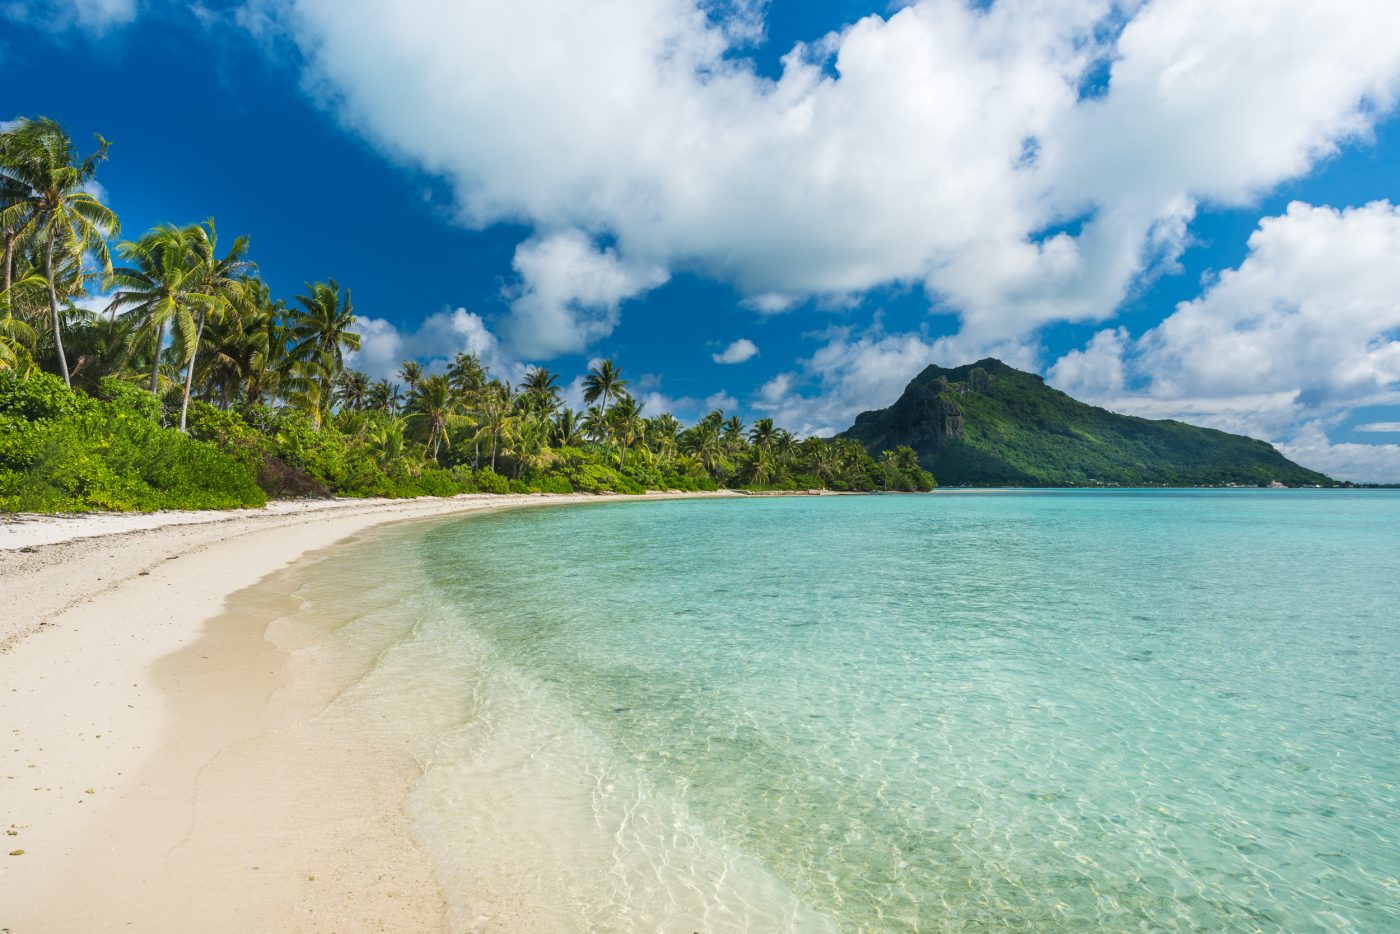 Beach and ocean of Maupiti, French-Polynesia.